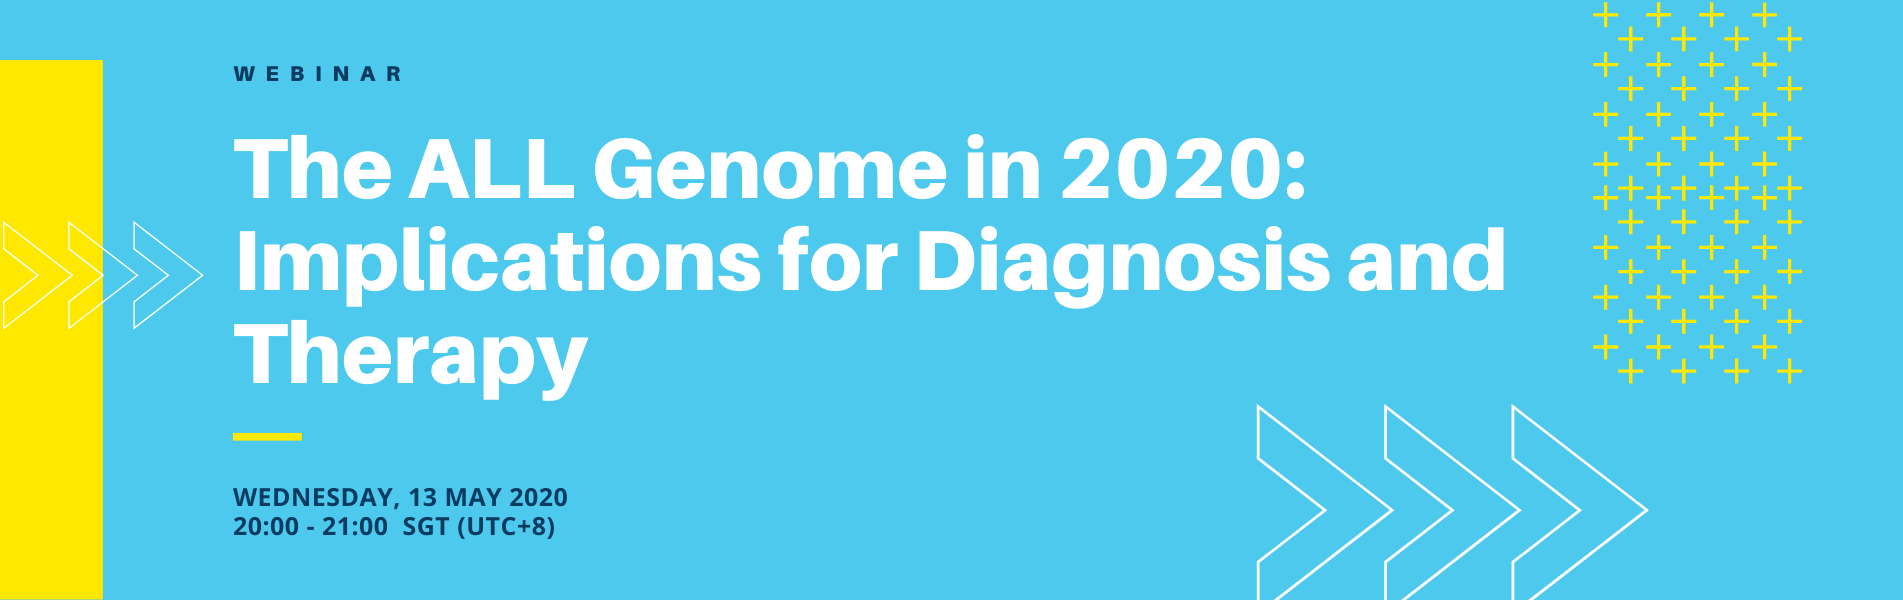 Webinar: The ALL Genome in 2020